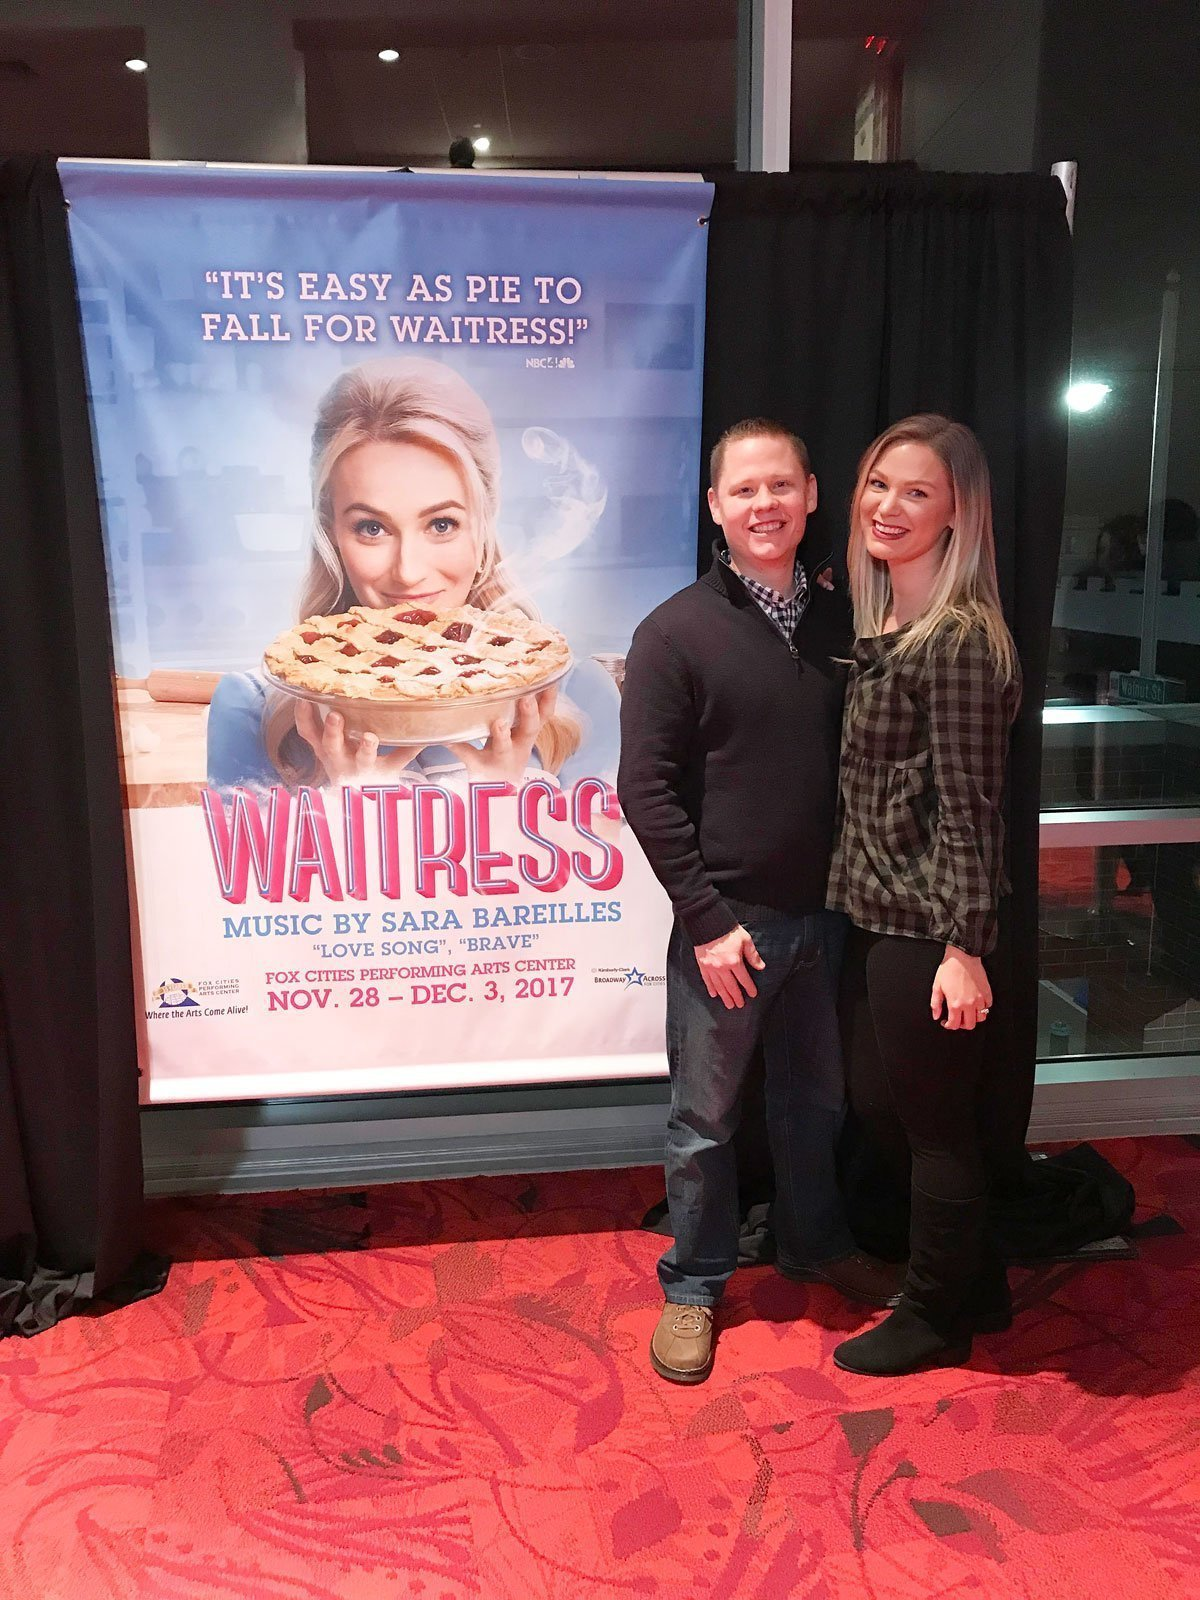 Waitress the Musical at the Fox Cities PAC